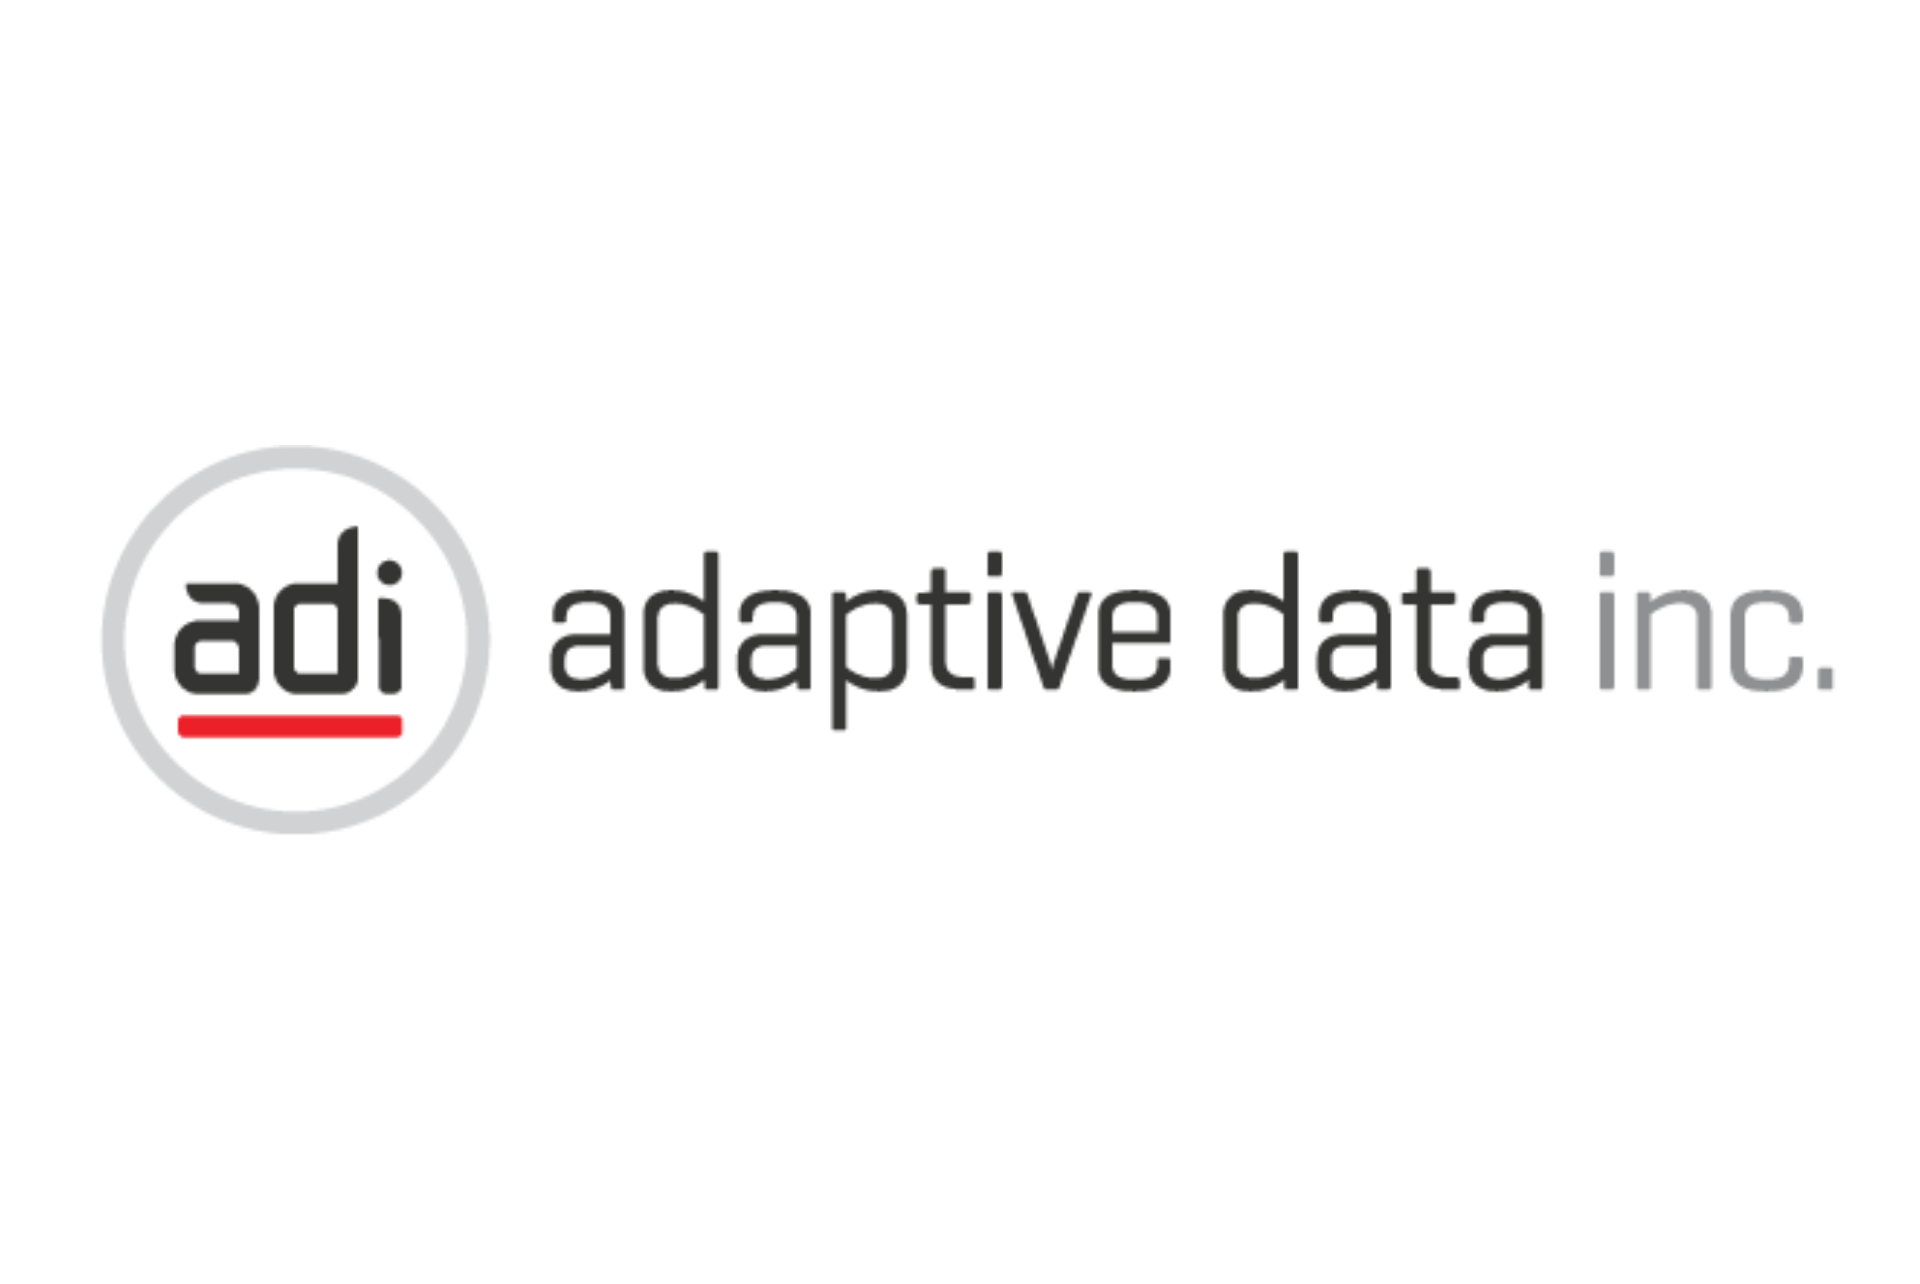 AdaptiveDataInc